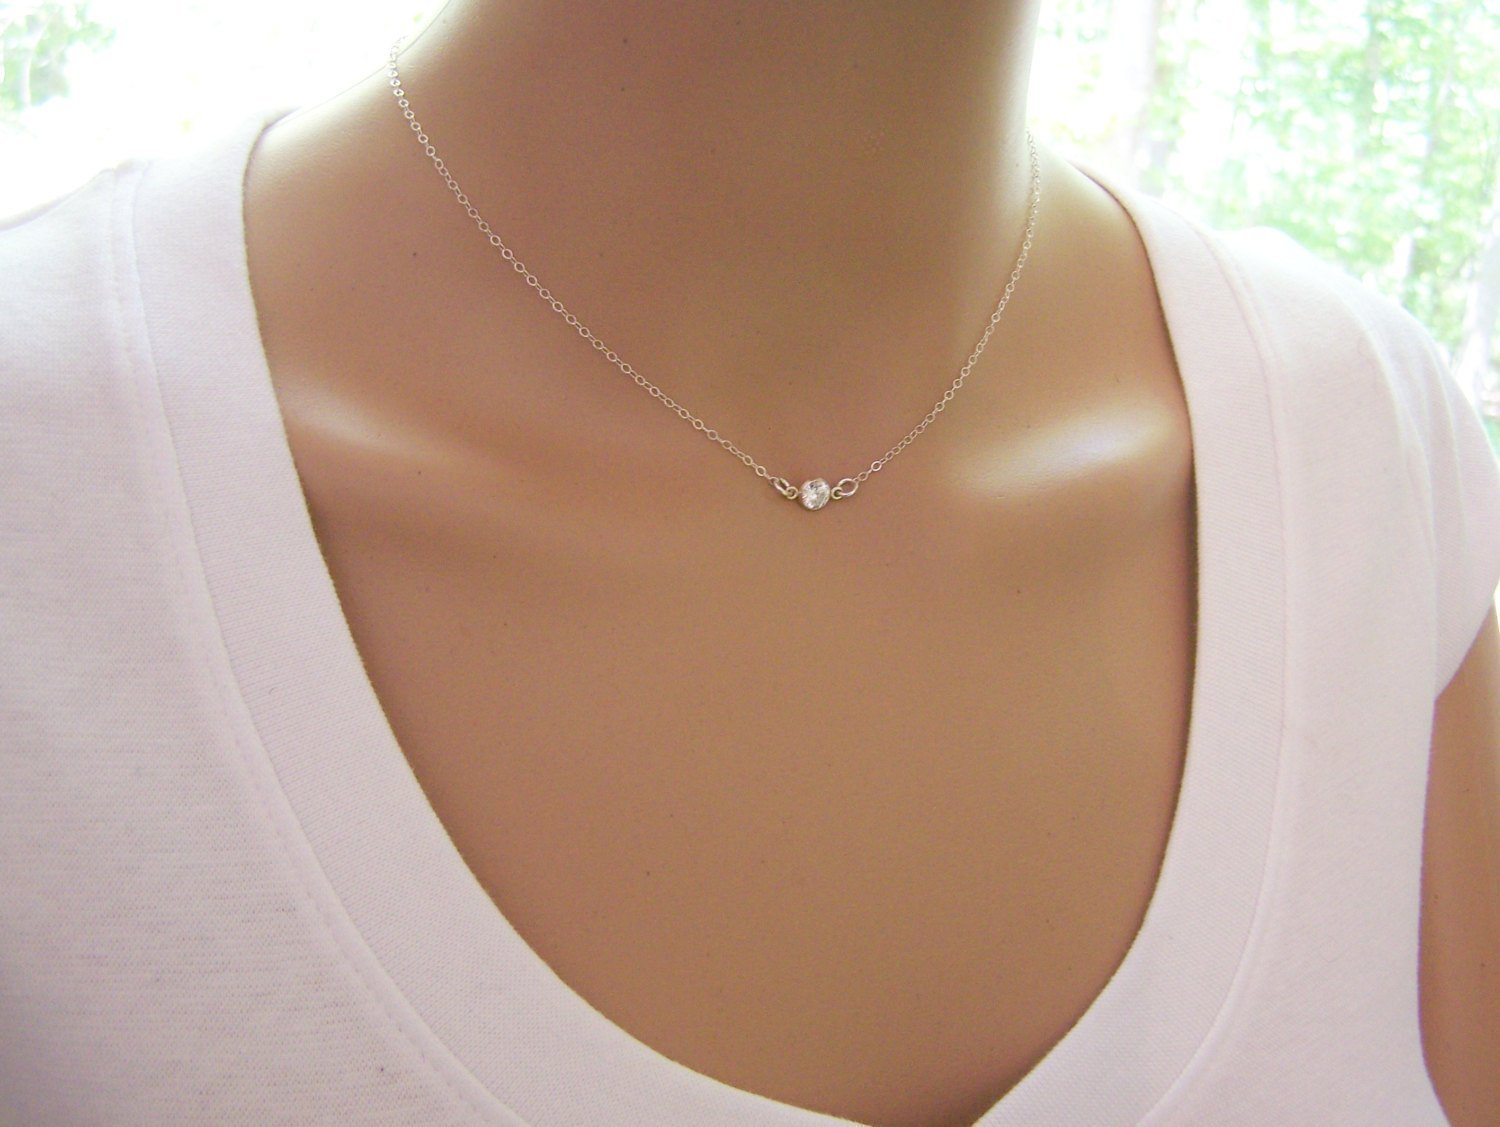 popesco long layering sh bar lv crystal stone gold necklace catherine dainty marquise shade